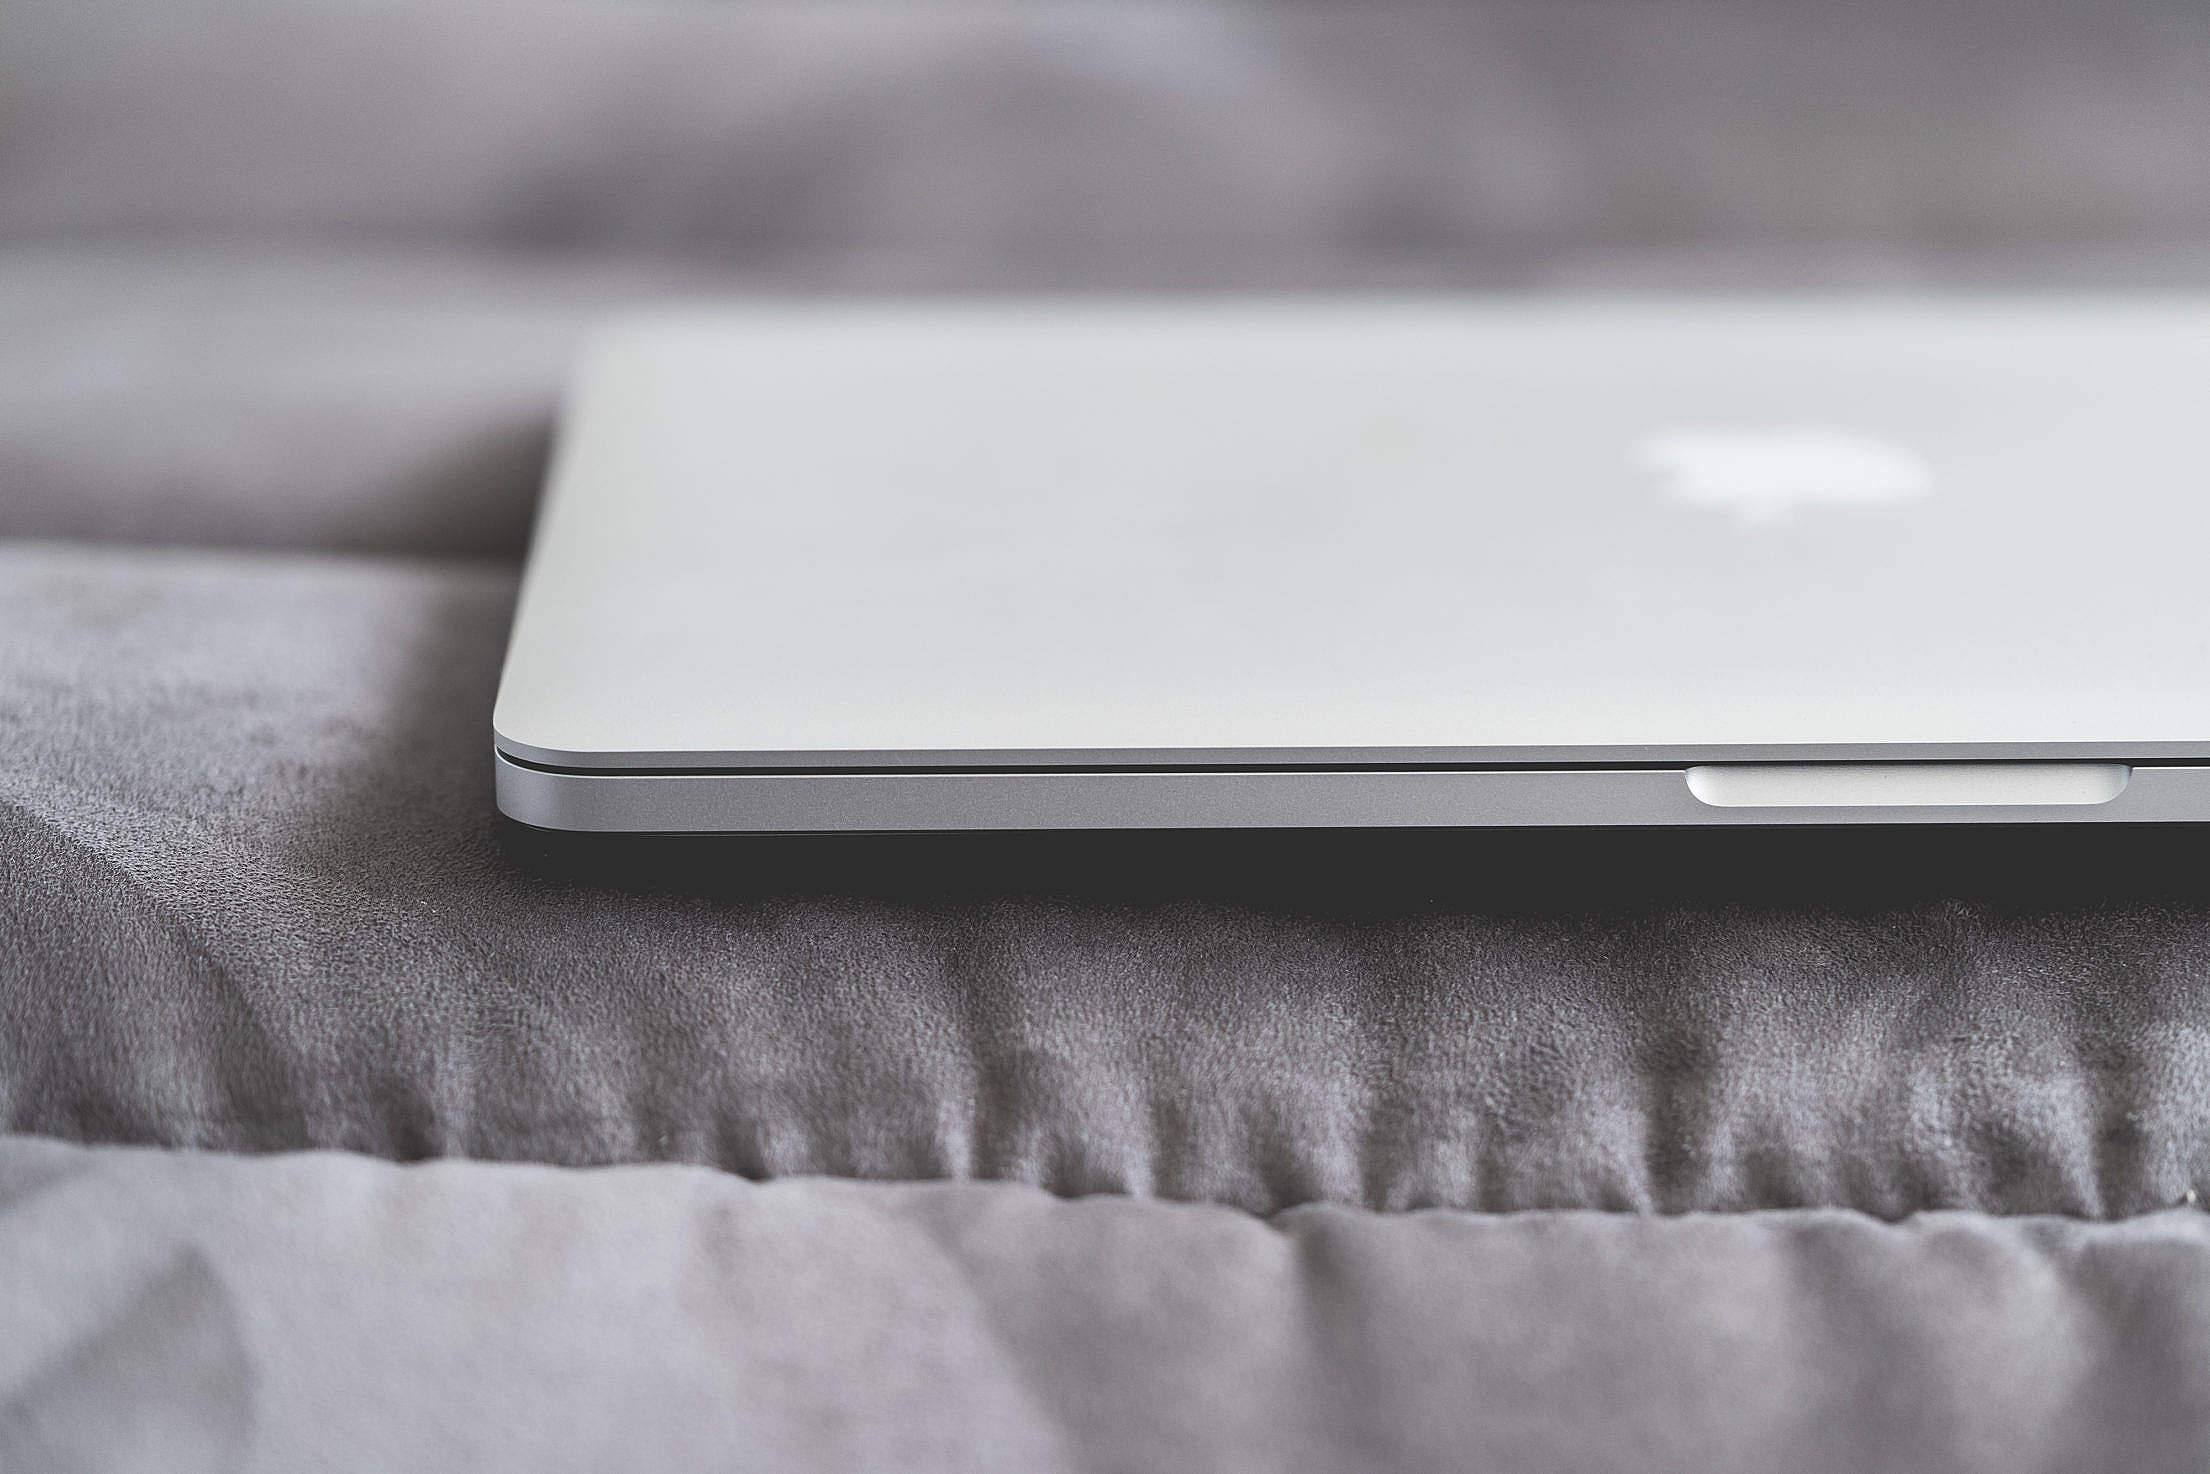 Closed Macbook Laptop on a Sofa Free Stock Photo